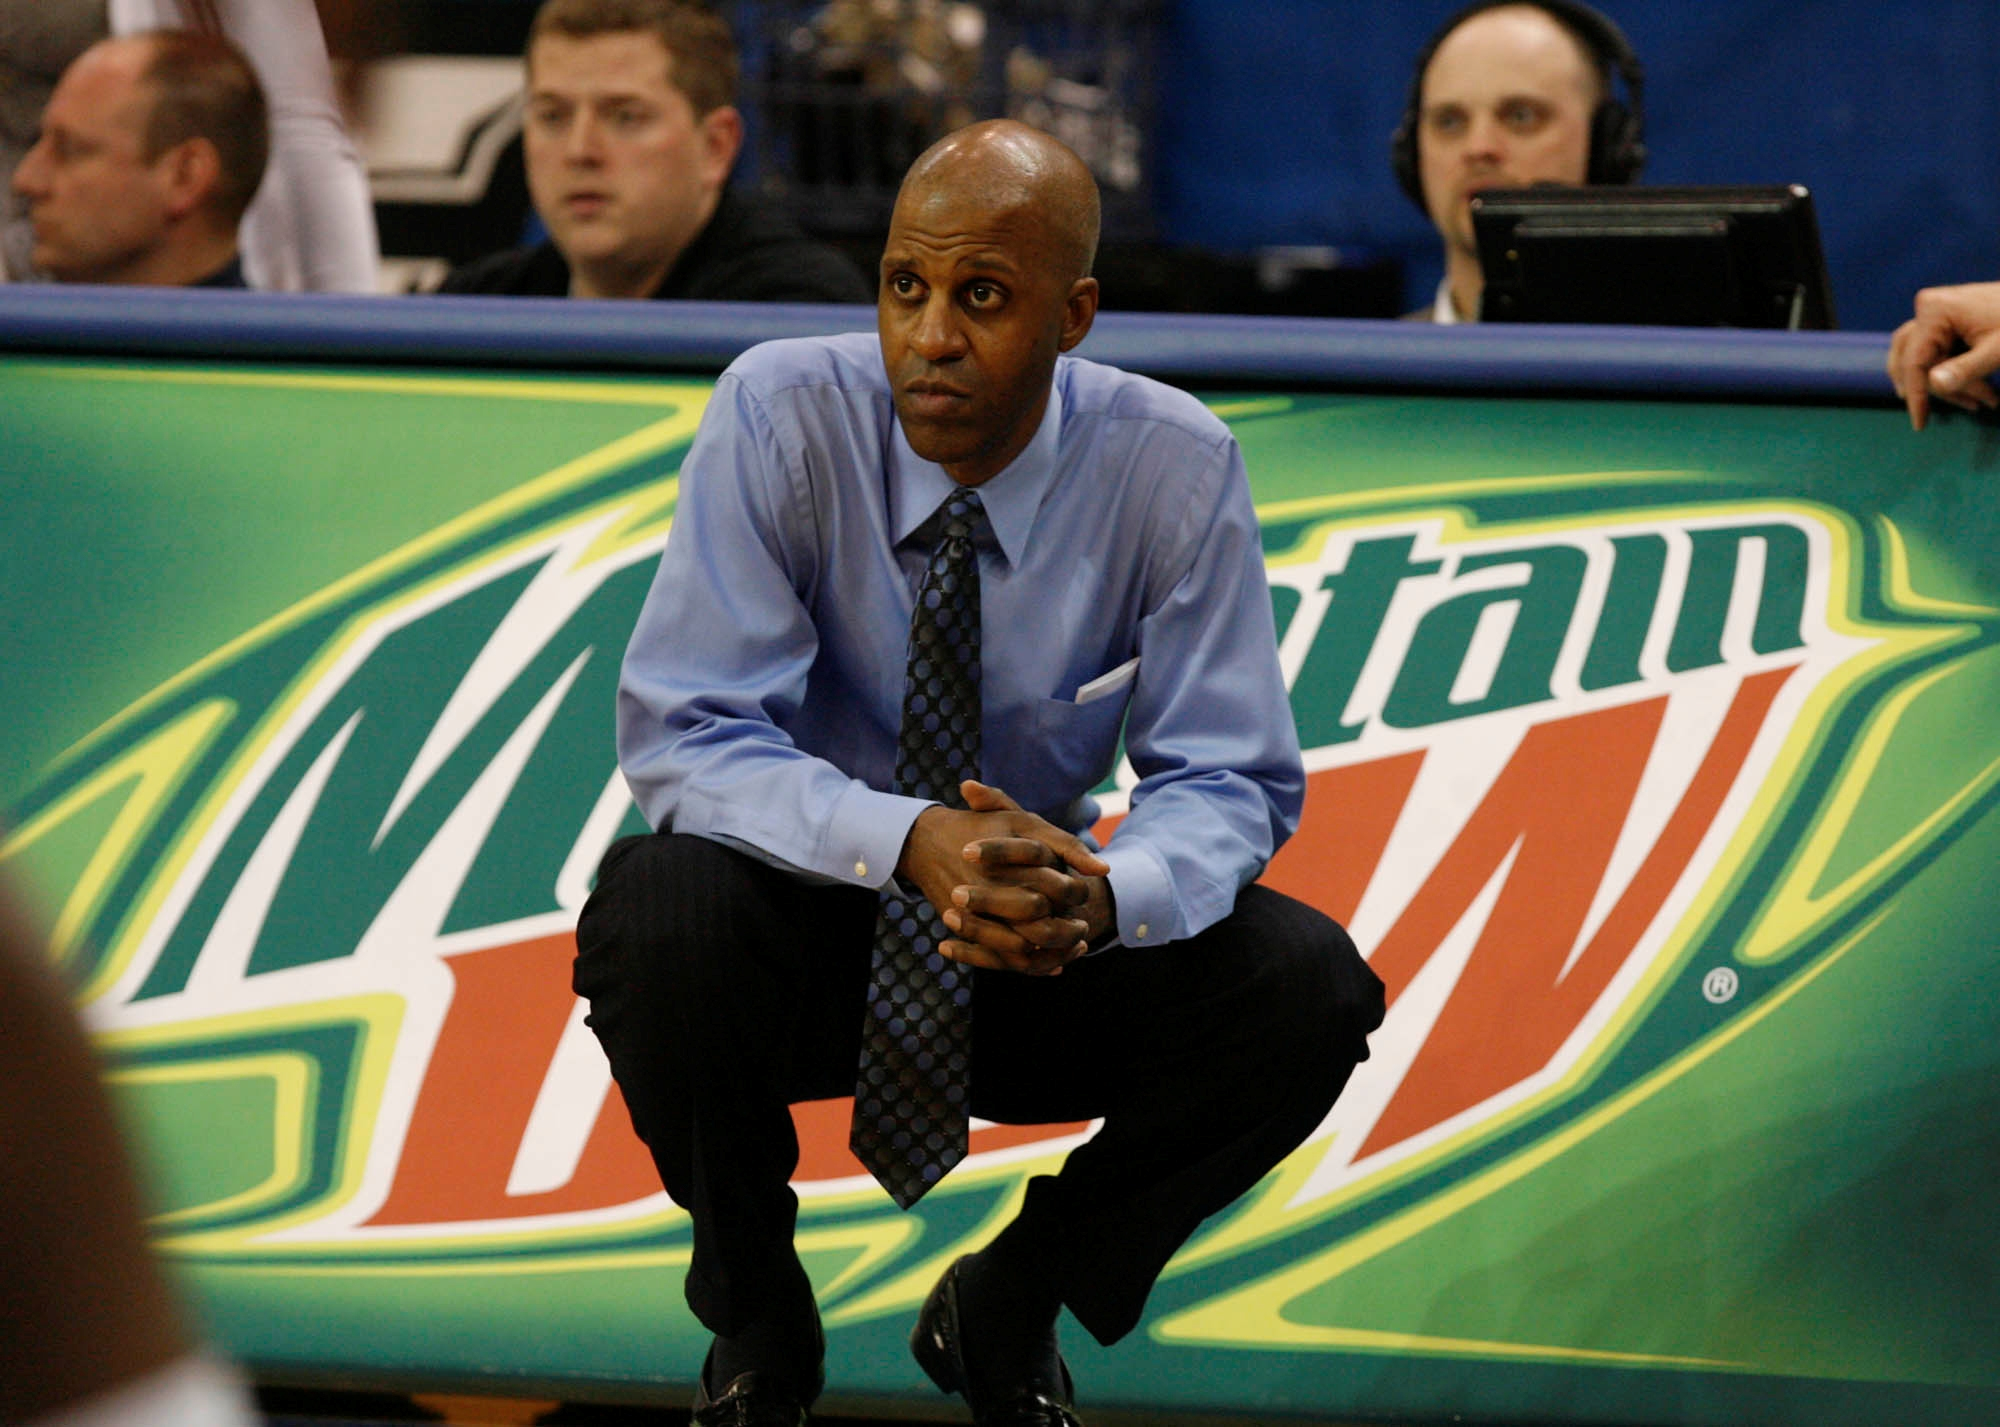 SPORTS UB men's basketball  -- UB's head coach  Reggie Witherspoon looks on in game against Bowling Green  in 2nd half action at Alumni Arena  in Amherst, N.Y. on Wednesday   February 18, 2009. UB lost 48- 59  Bowling Green final. (Photo by John Hickey /The Buffalo News)